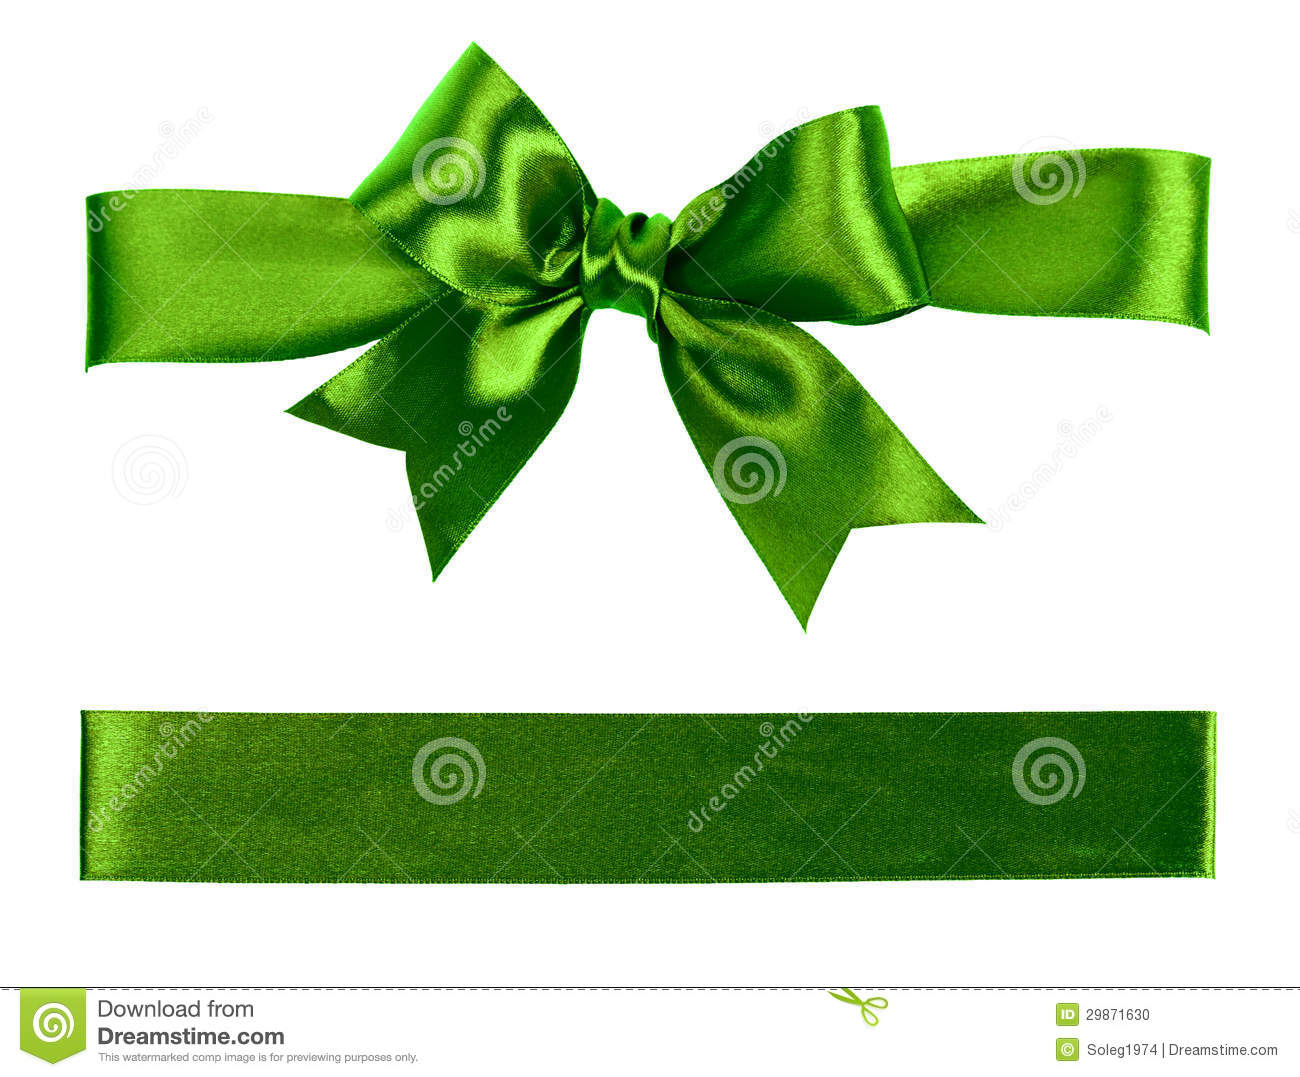 Green Christmas Bow Background Graphics: Big Green Holiday Bow On White Background Stock Photo